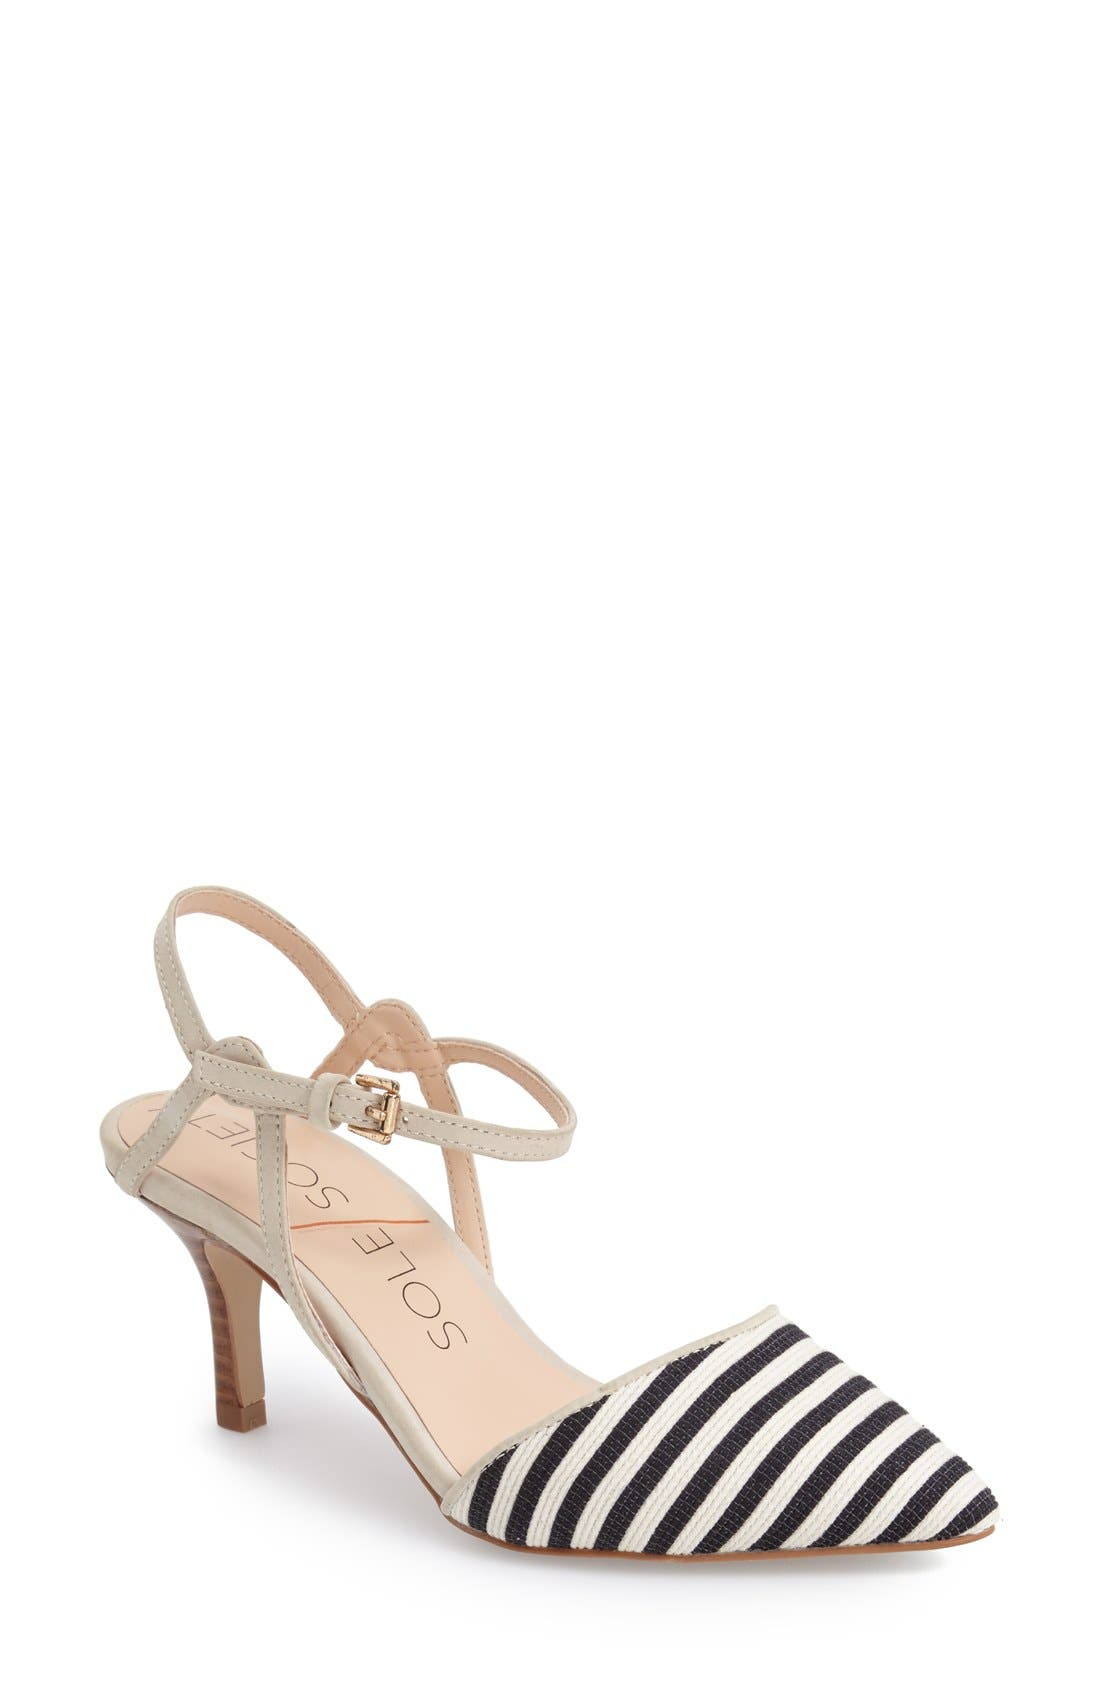 Main Image - Sole Society 'Rima' Ankle Strap Pump (Women)